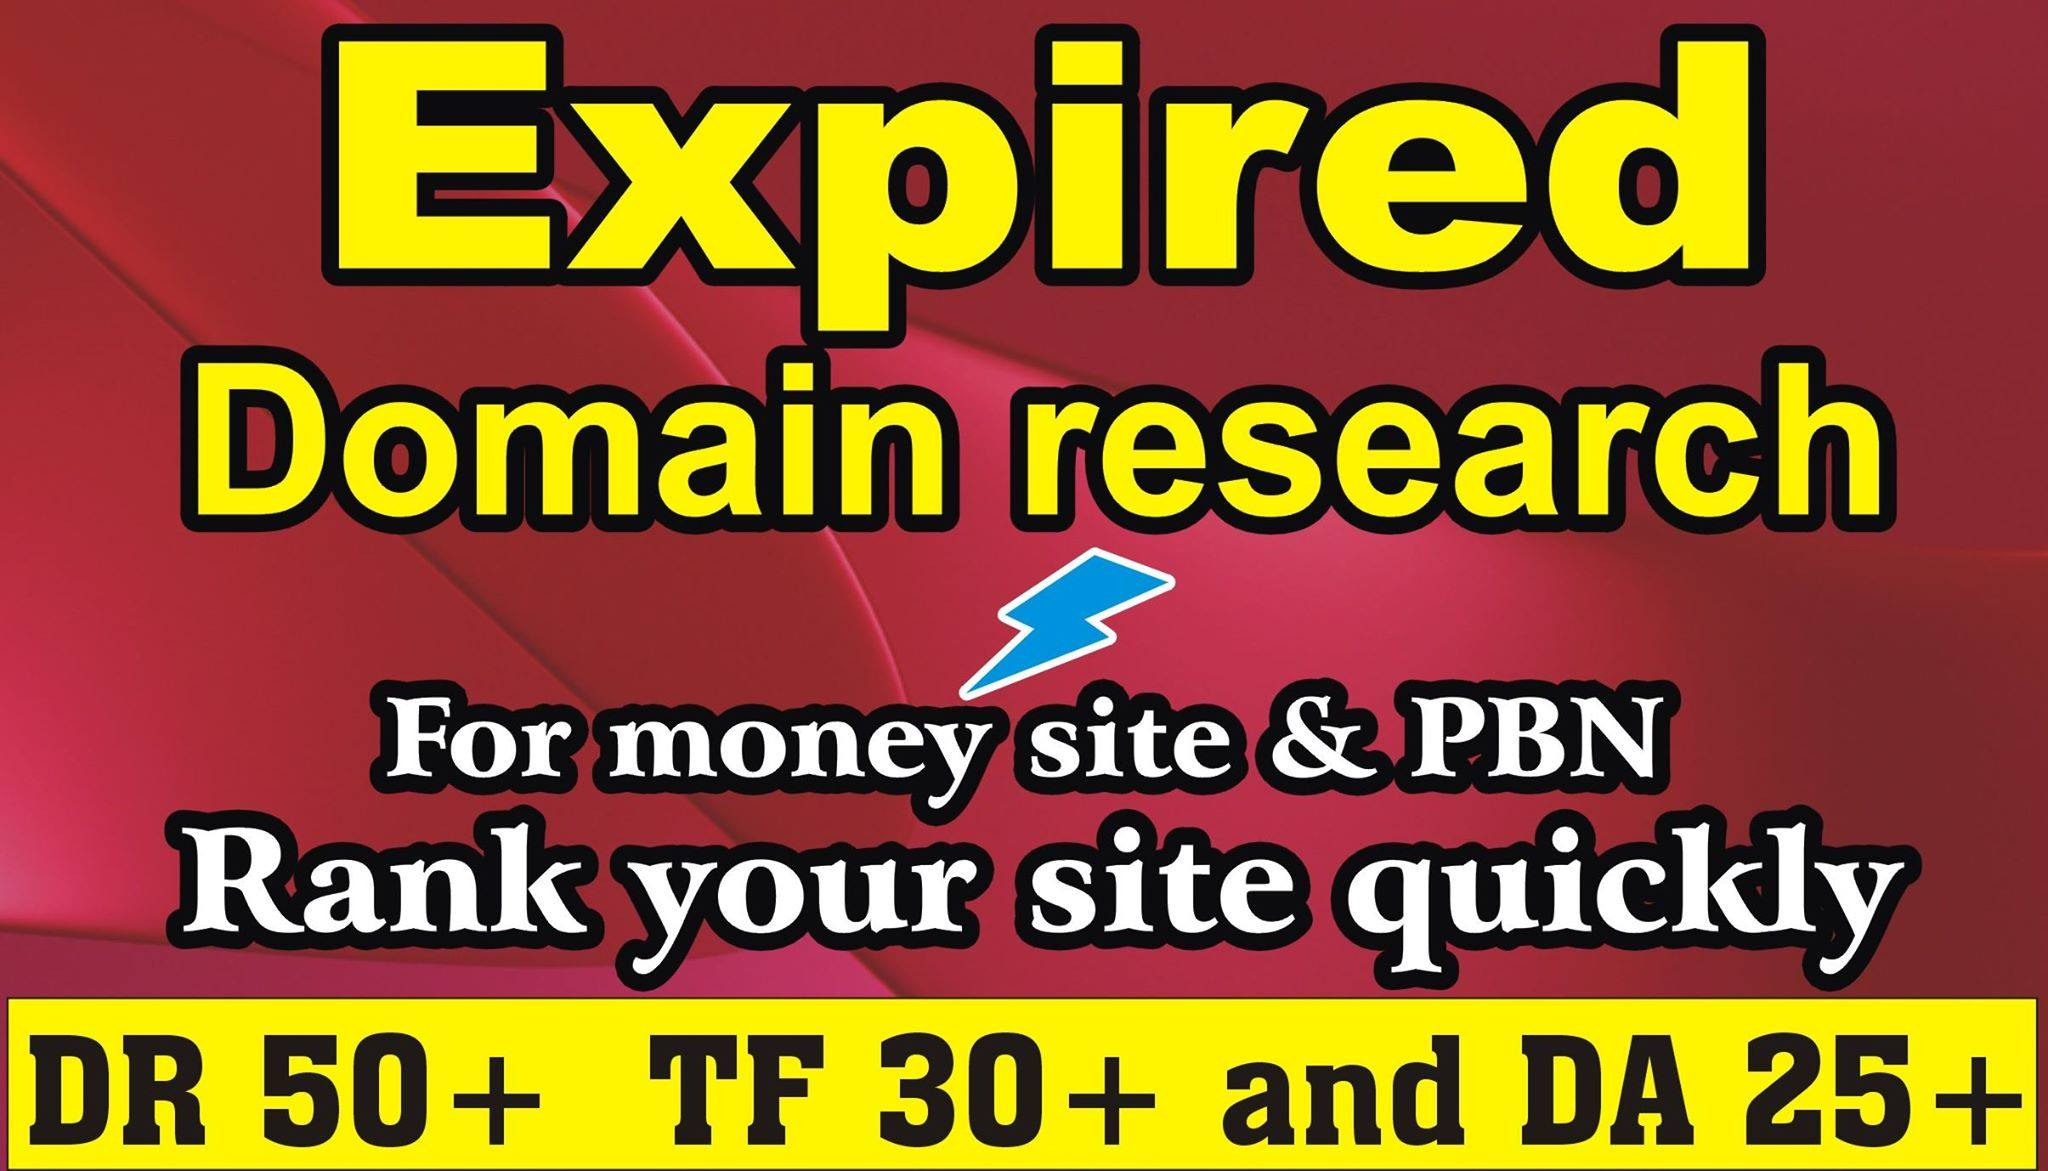 I will find High Authority Expired Domain in cheap price